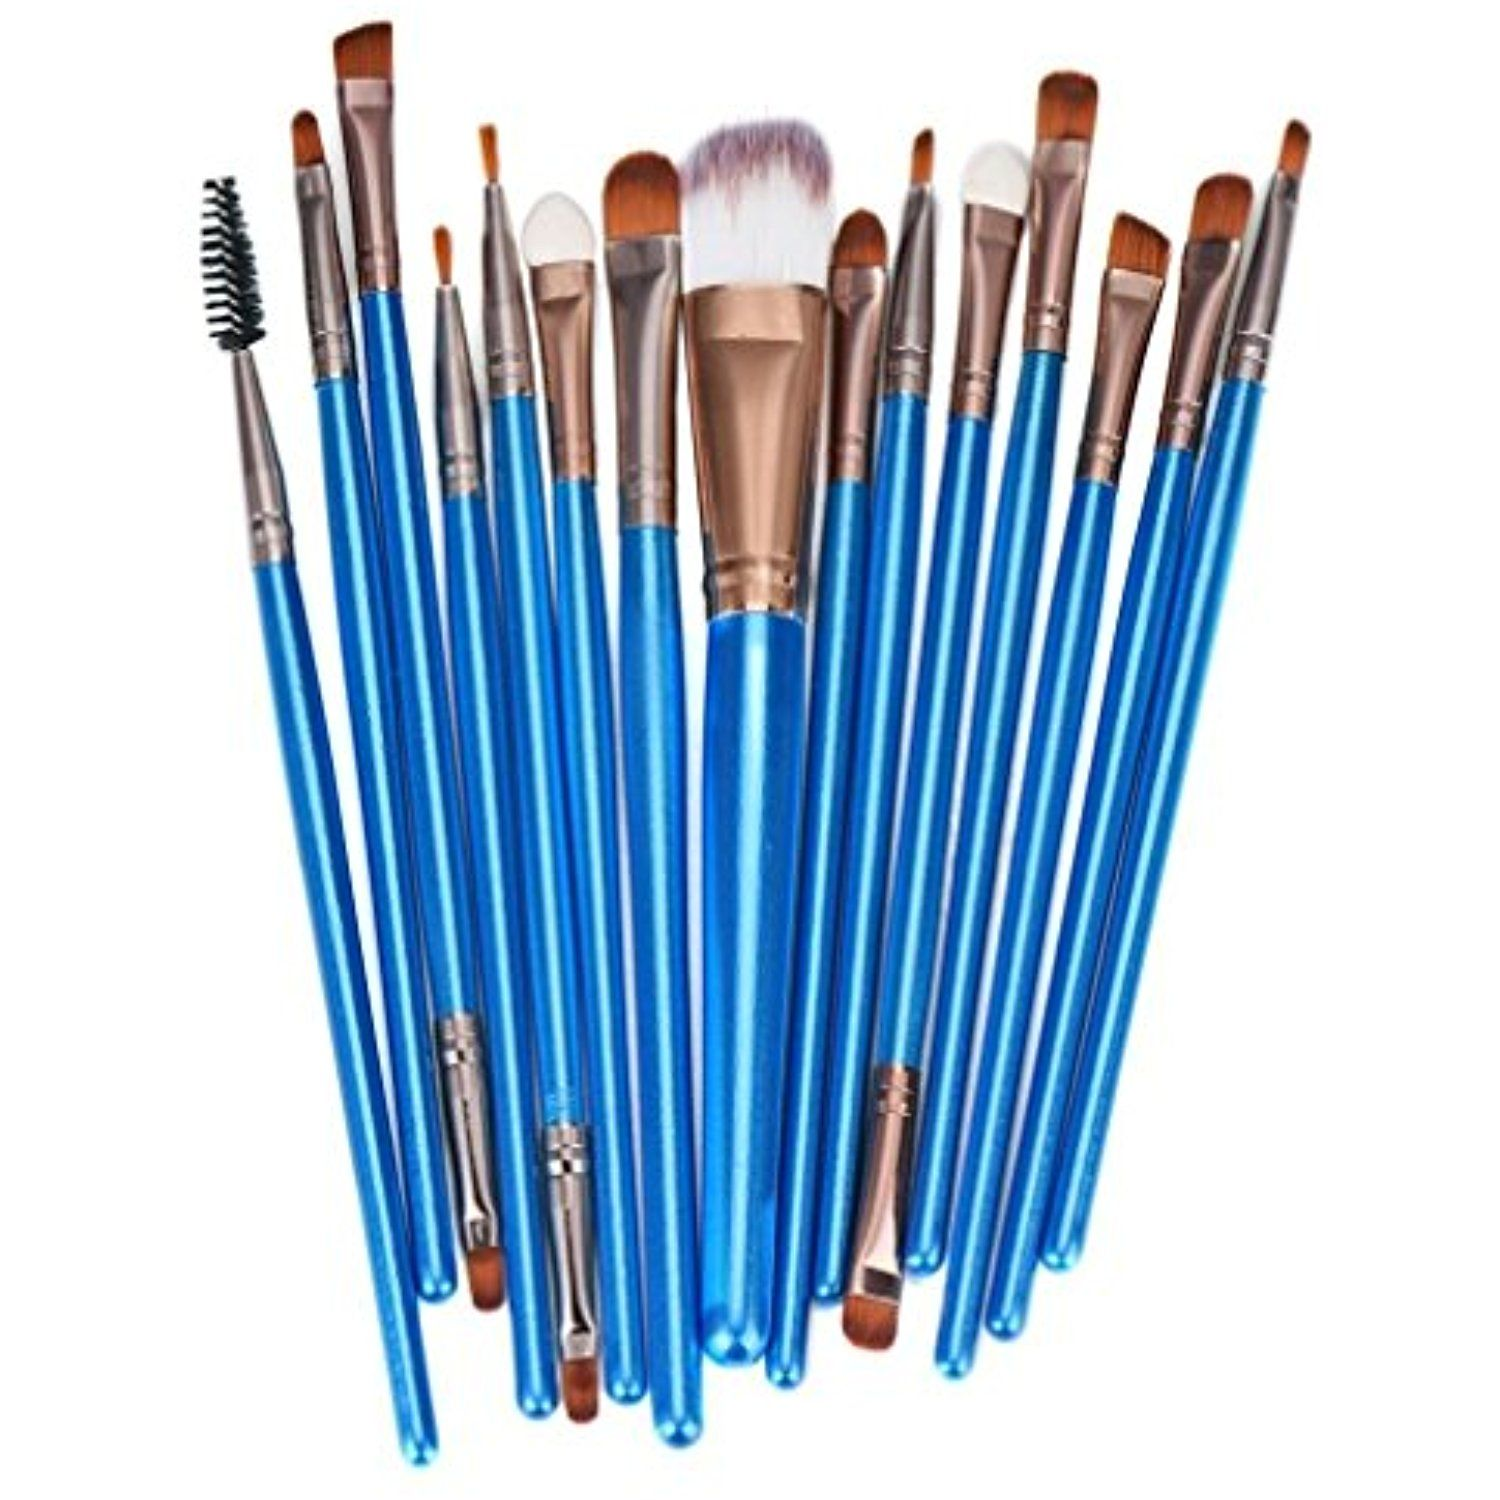 Tenworld Pro 12 pcs Makeup Brush Set Tools Foundation